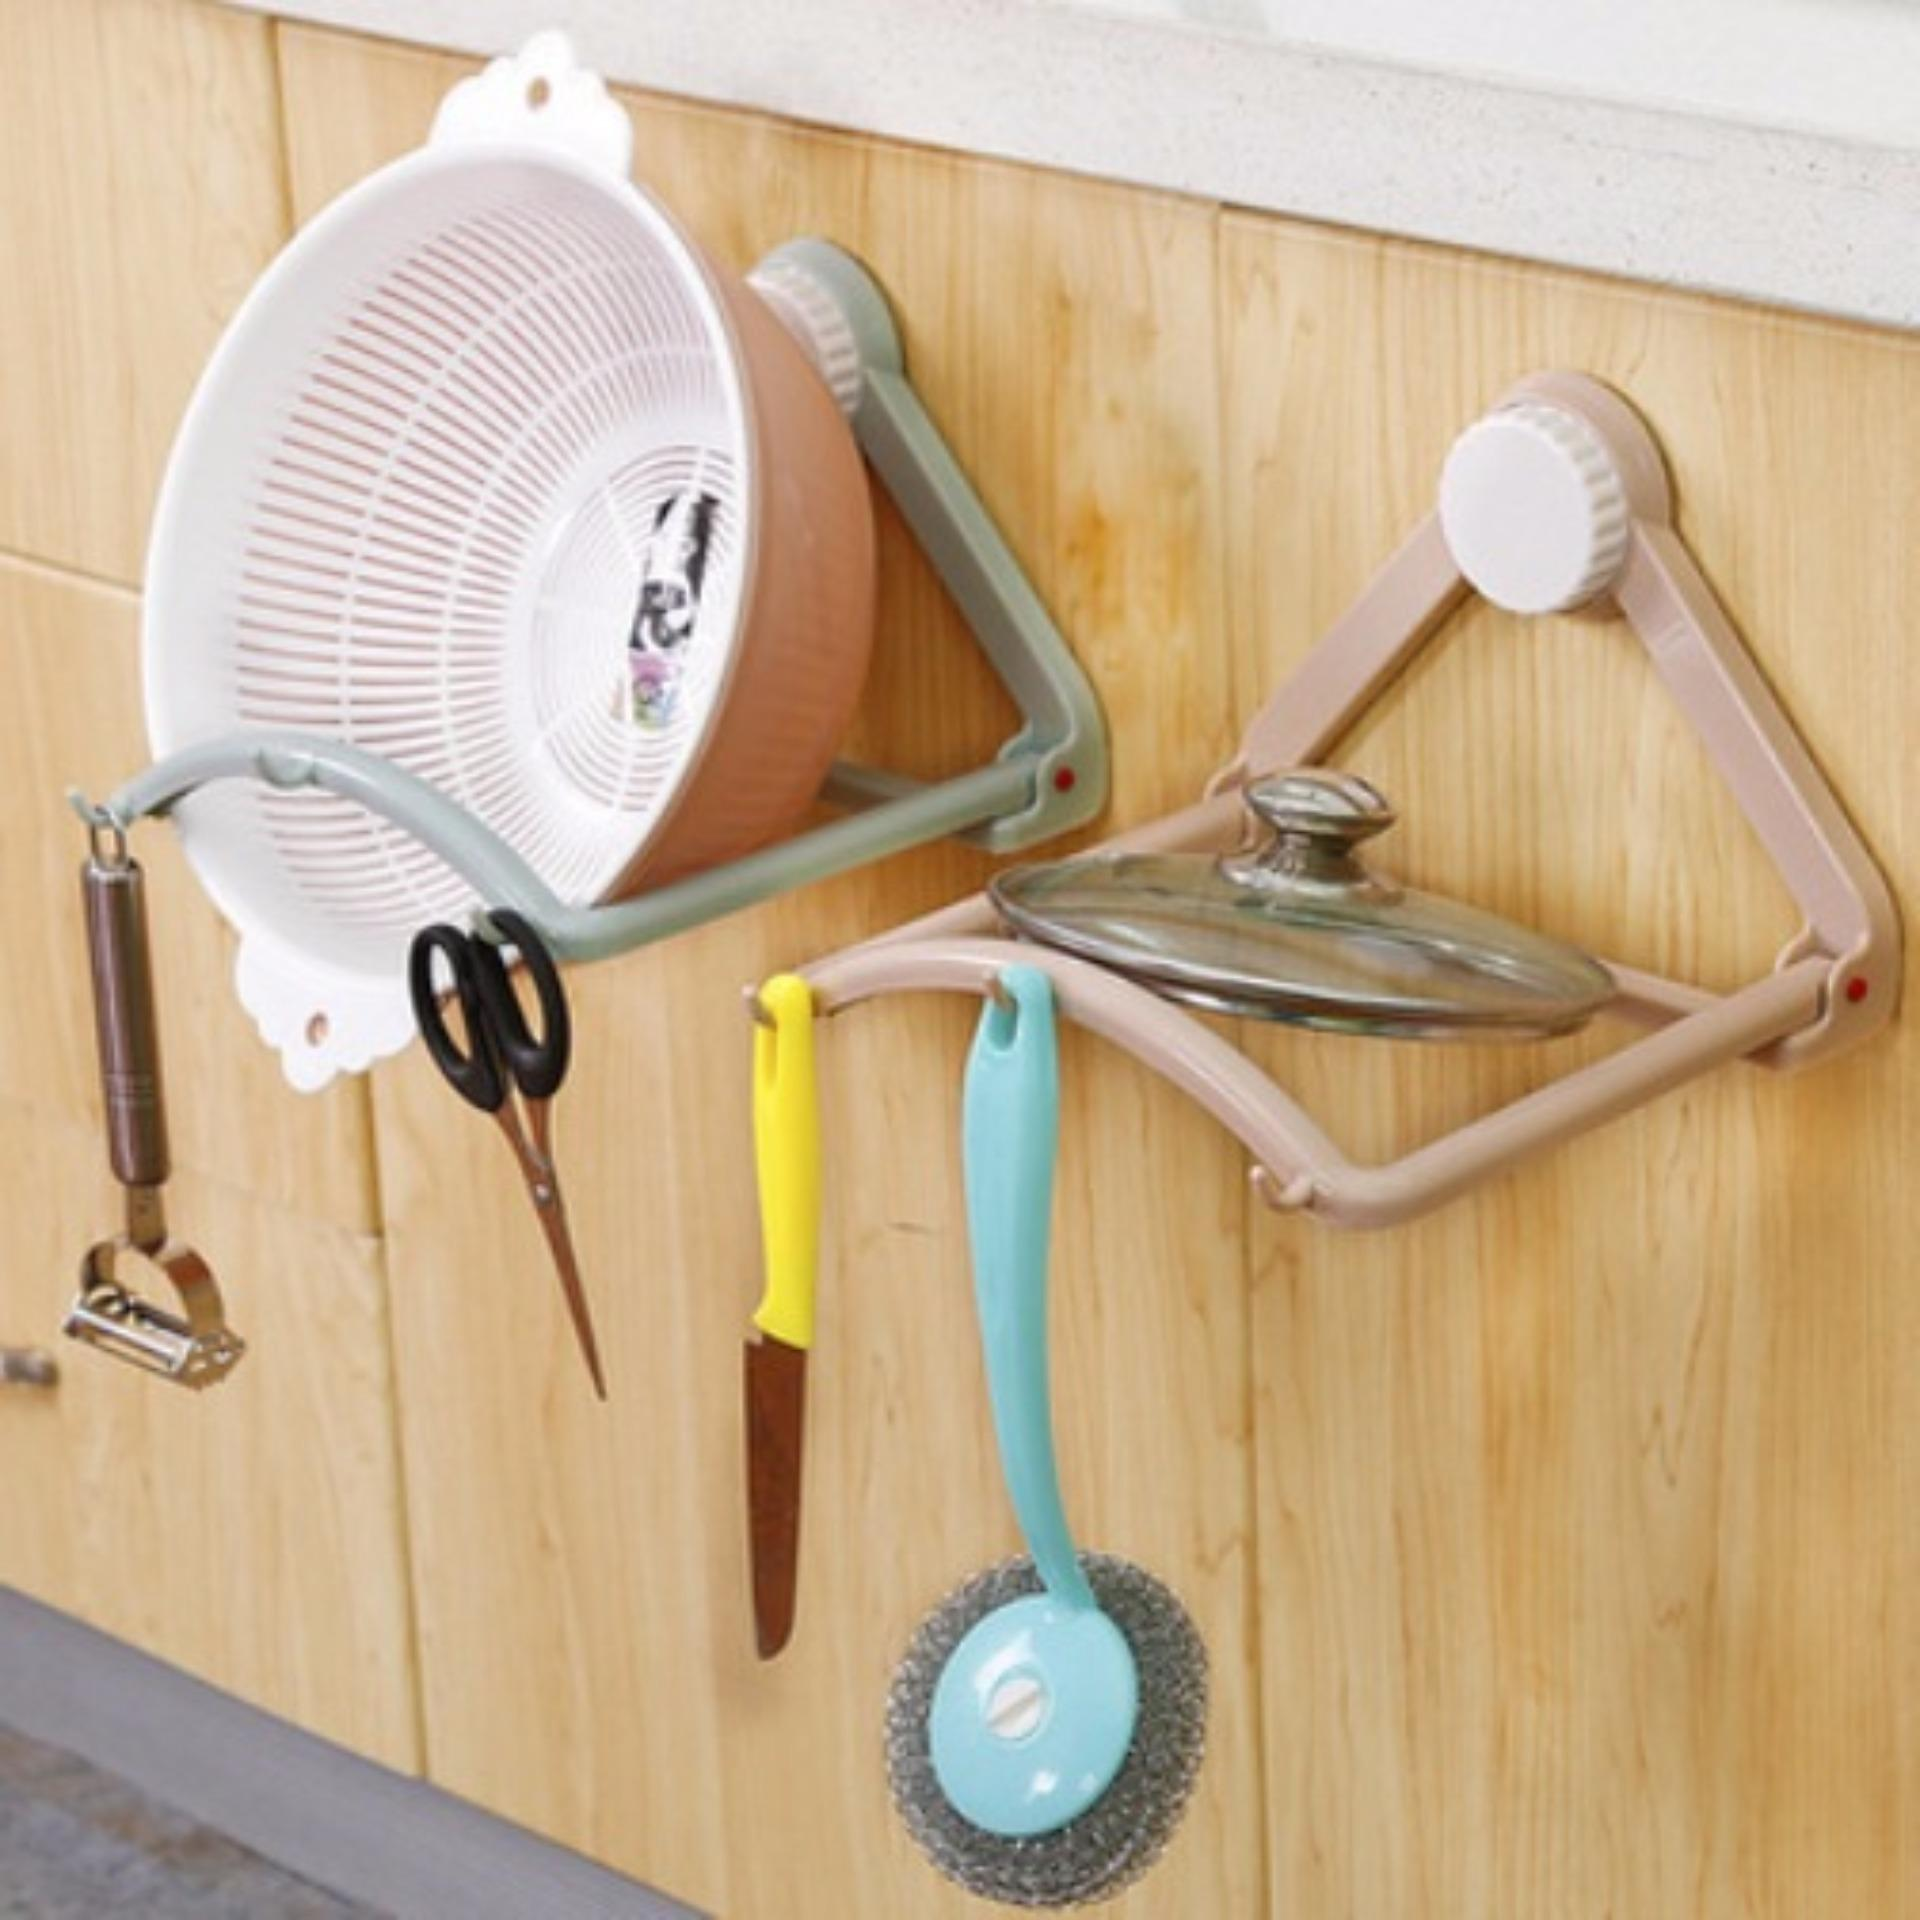 Philippines | Ultralite Bathroom and Kitchen Tub Rack Hot Deals